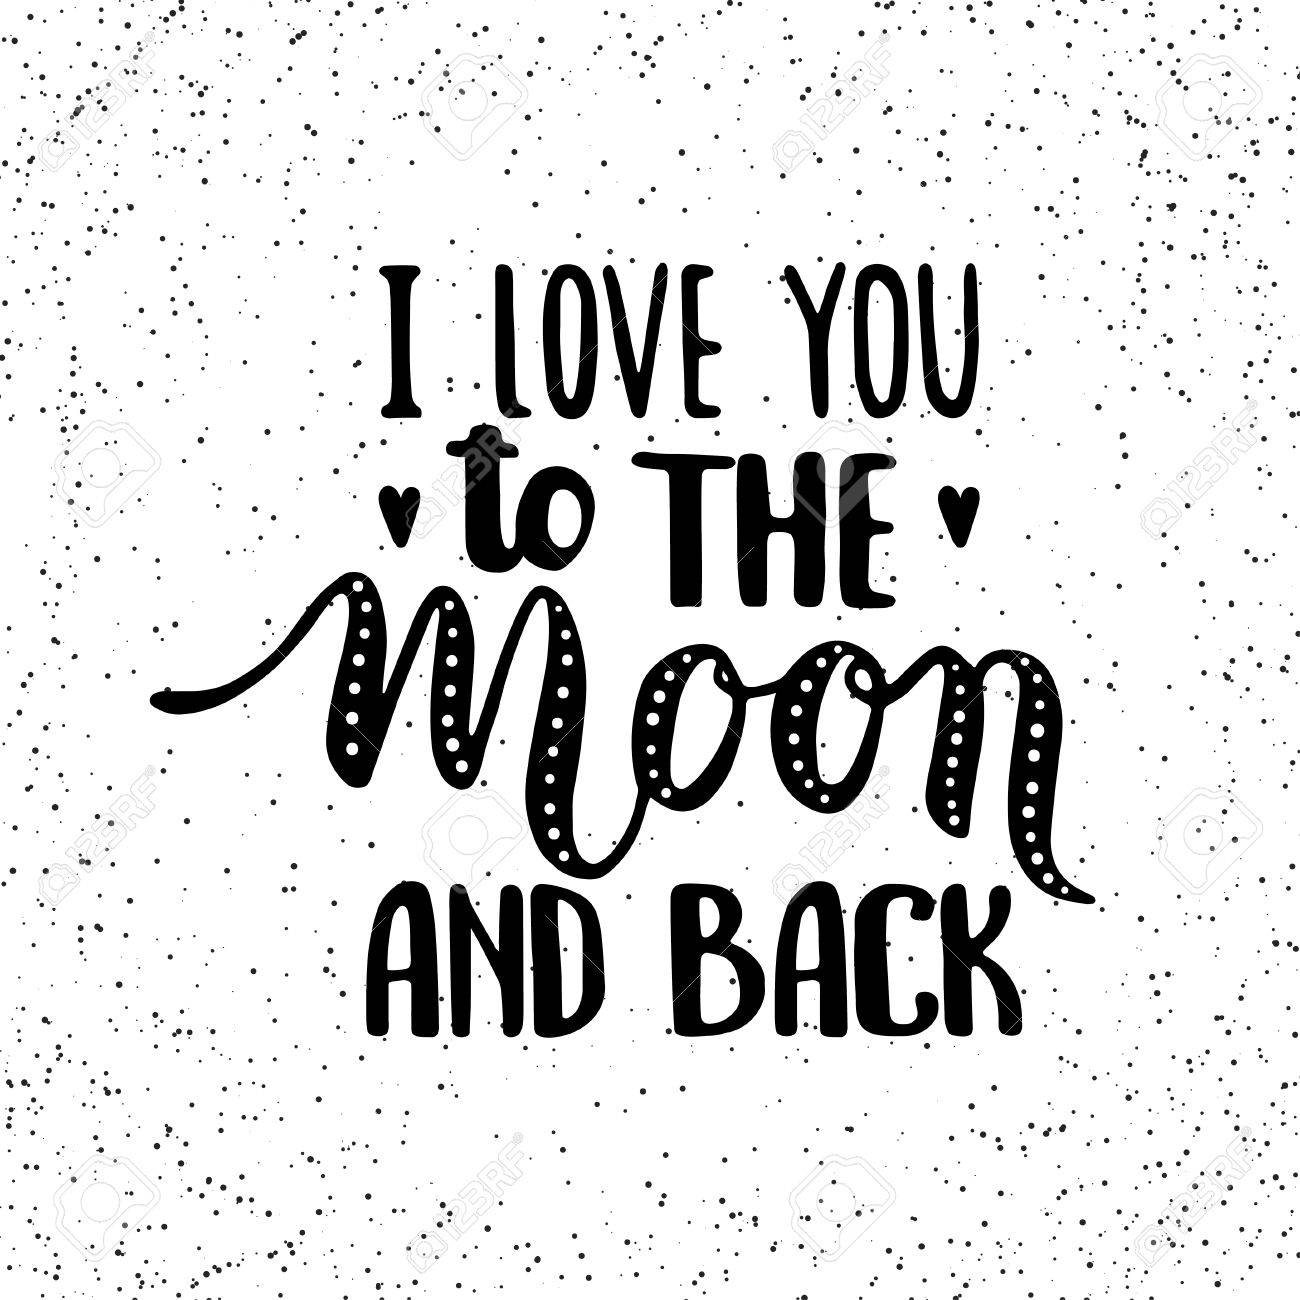 Quote I Love You To The Moon And Back Quotei Love You To The Moon And Backhand Drawn Typography